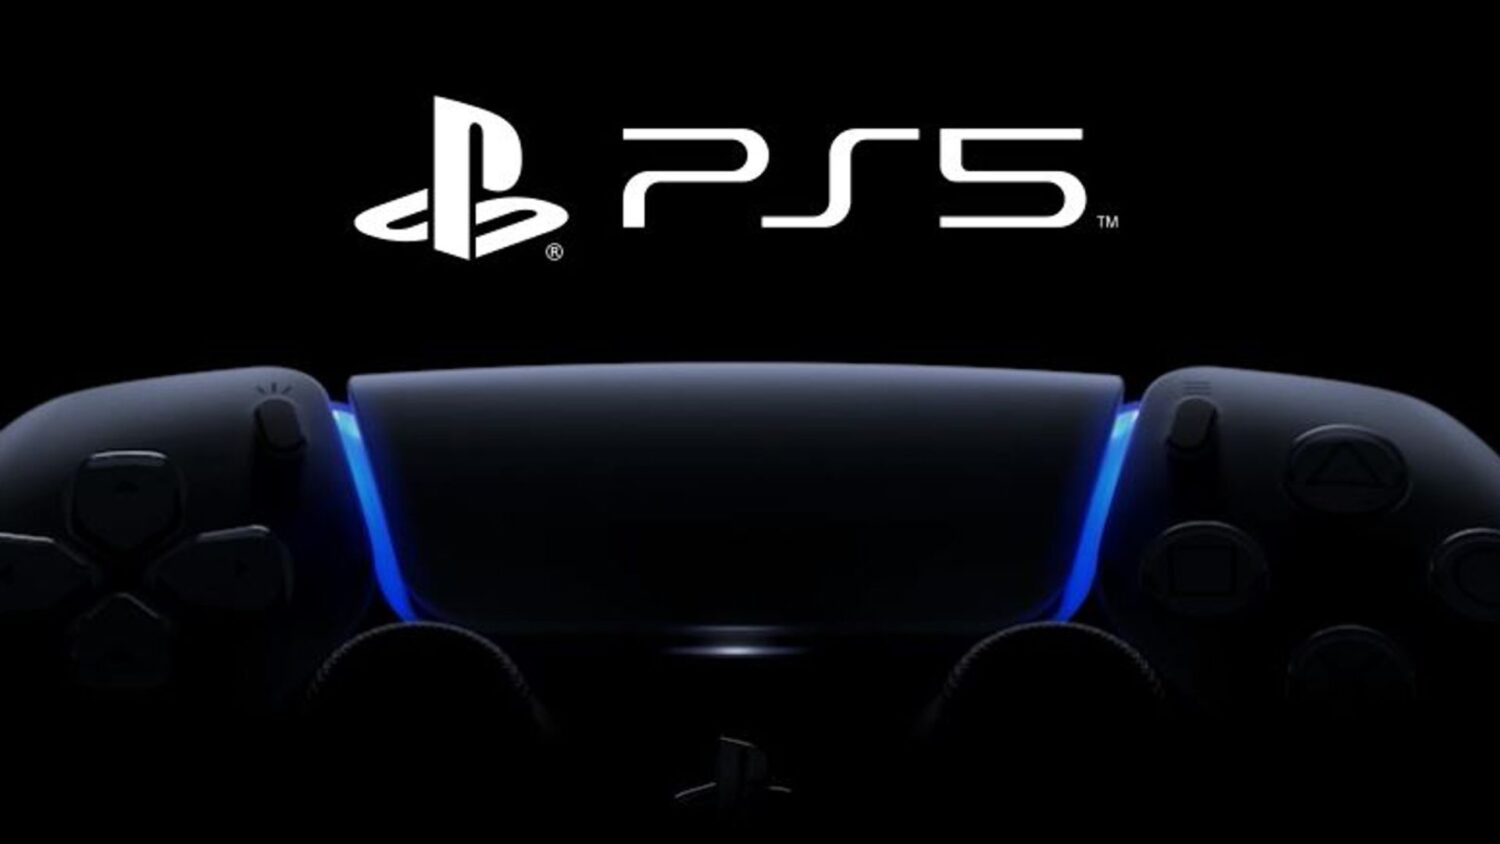 DualSense Charging Station - PS5. -PlayStation 5 Sony Store 1.1 Visit the PS5 PlayStation Store – NOV 12, 2020 2 DualSense Wireless Controller 3 PS5 DualSense Charging Station 4 HD Camera PlayStation 5 5 PULSE 3D Wireless Headset #PS5 6 Media Remote PlayStation 5 6.1 Related post